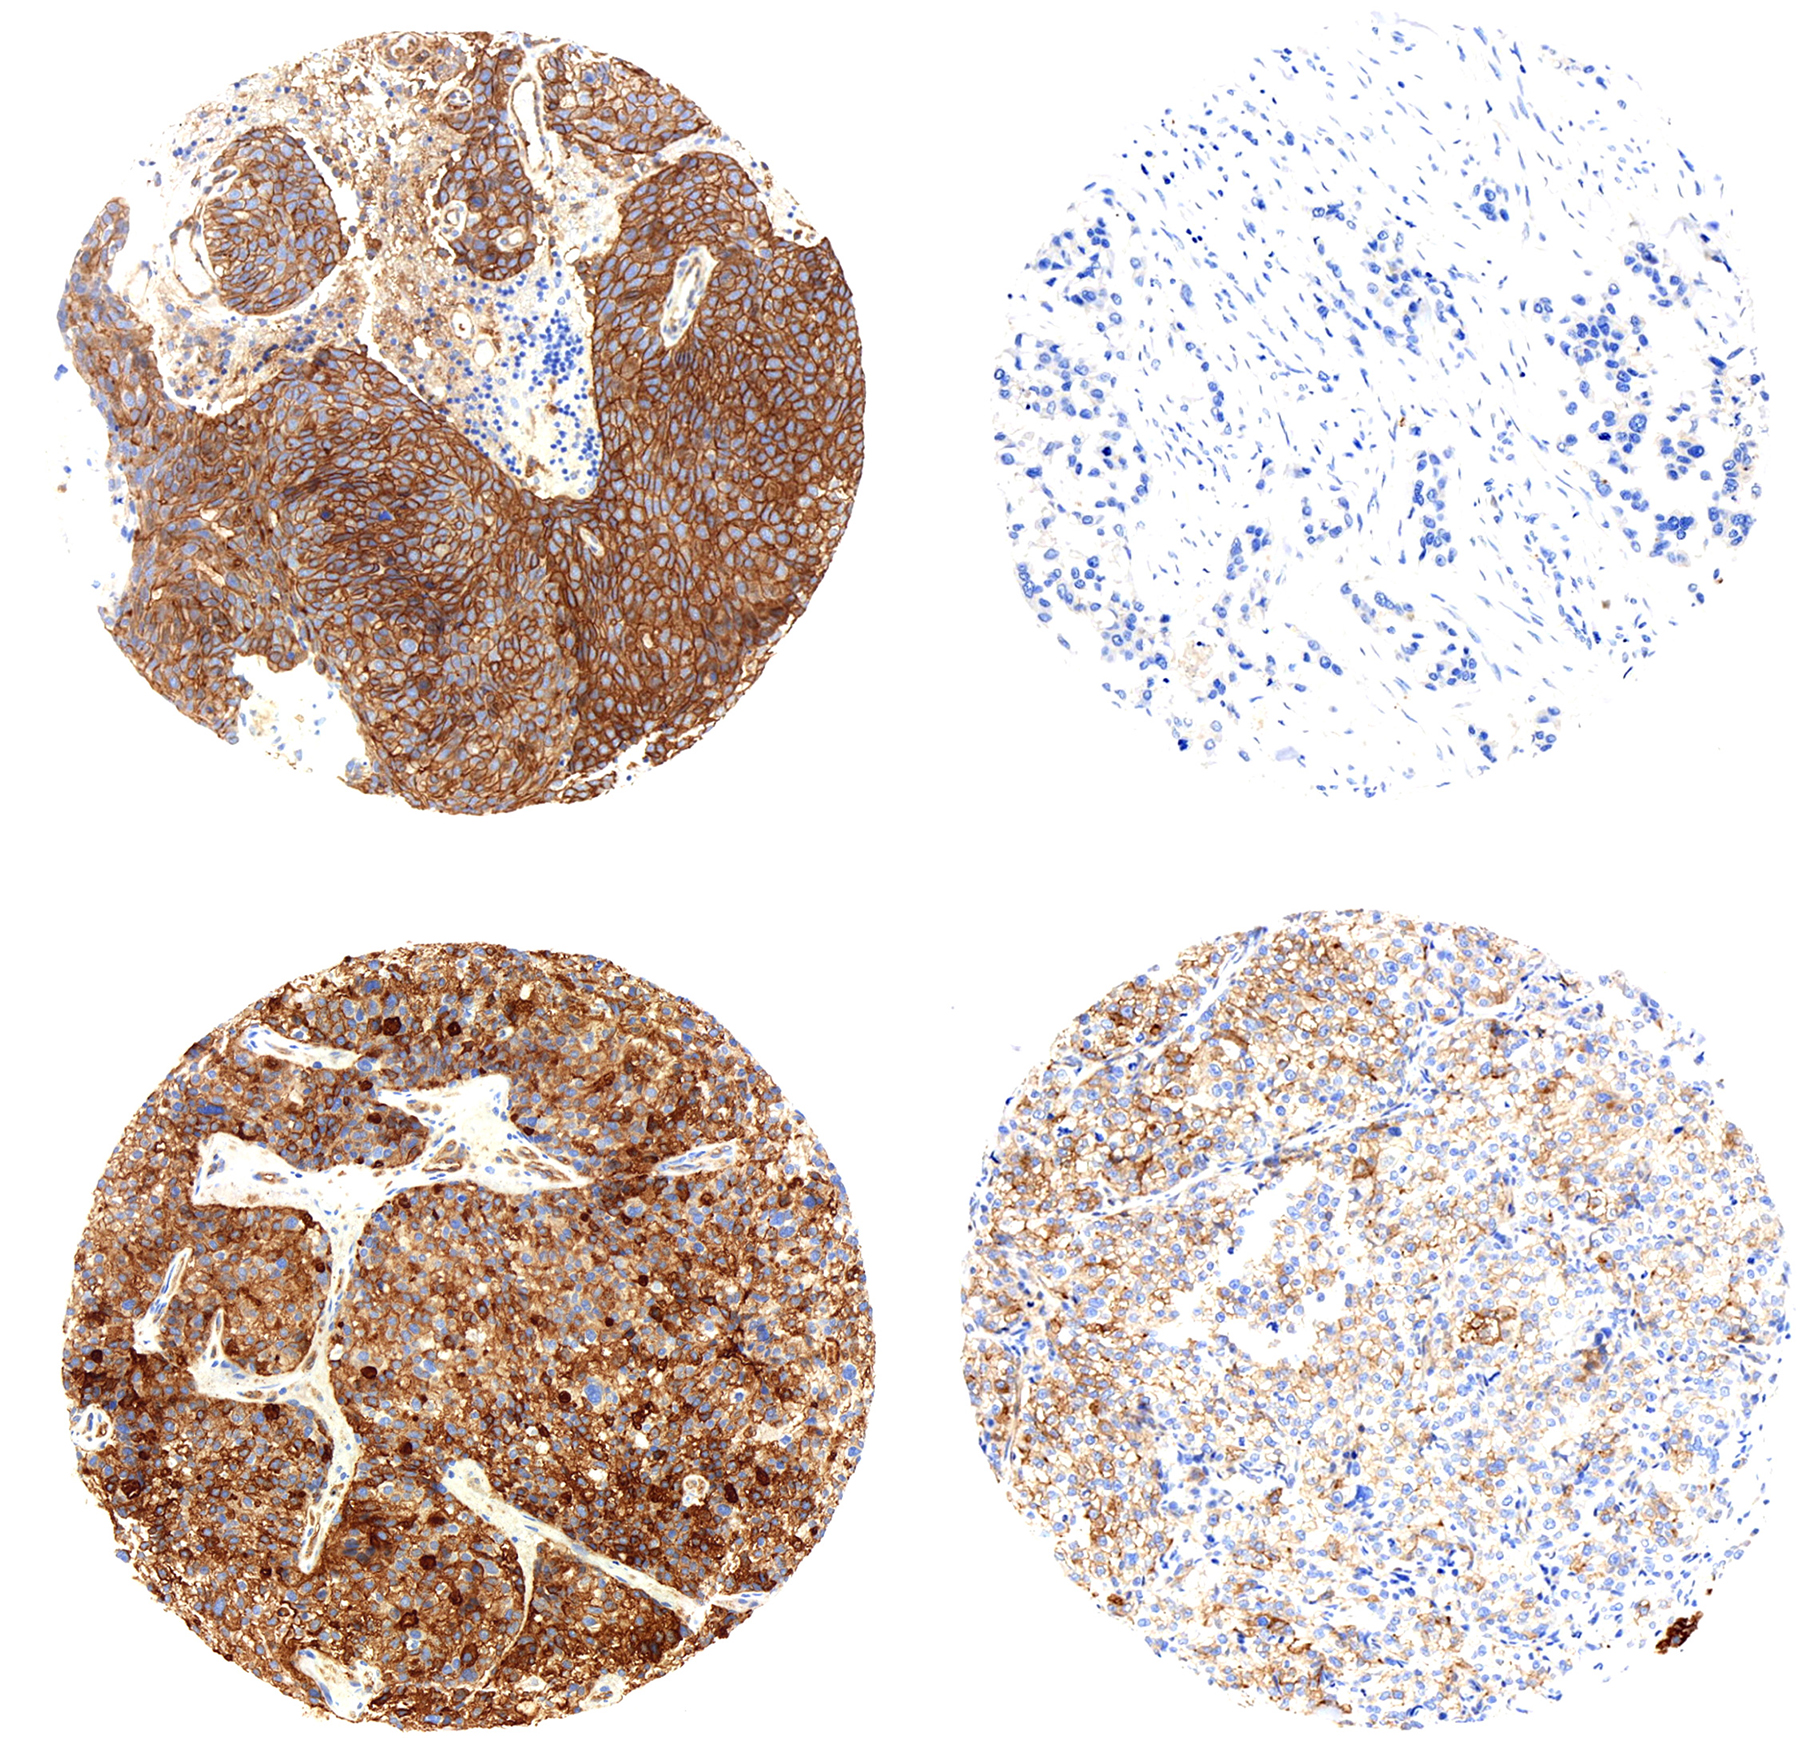 ngTMA® technology: Immunostaining of pGluN2B (Y1252) in brain metastases (Left column) and immunostaining of pGluN2B (Y1252) in breast primary tumor (Right column). Translational Research Unit. Institute of Pathology – University of Bern.